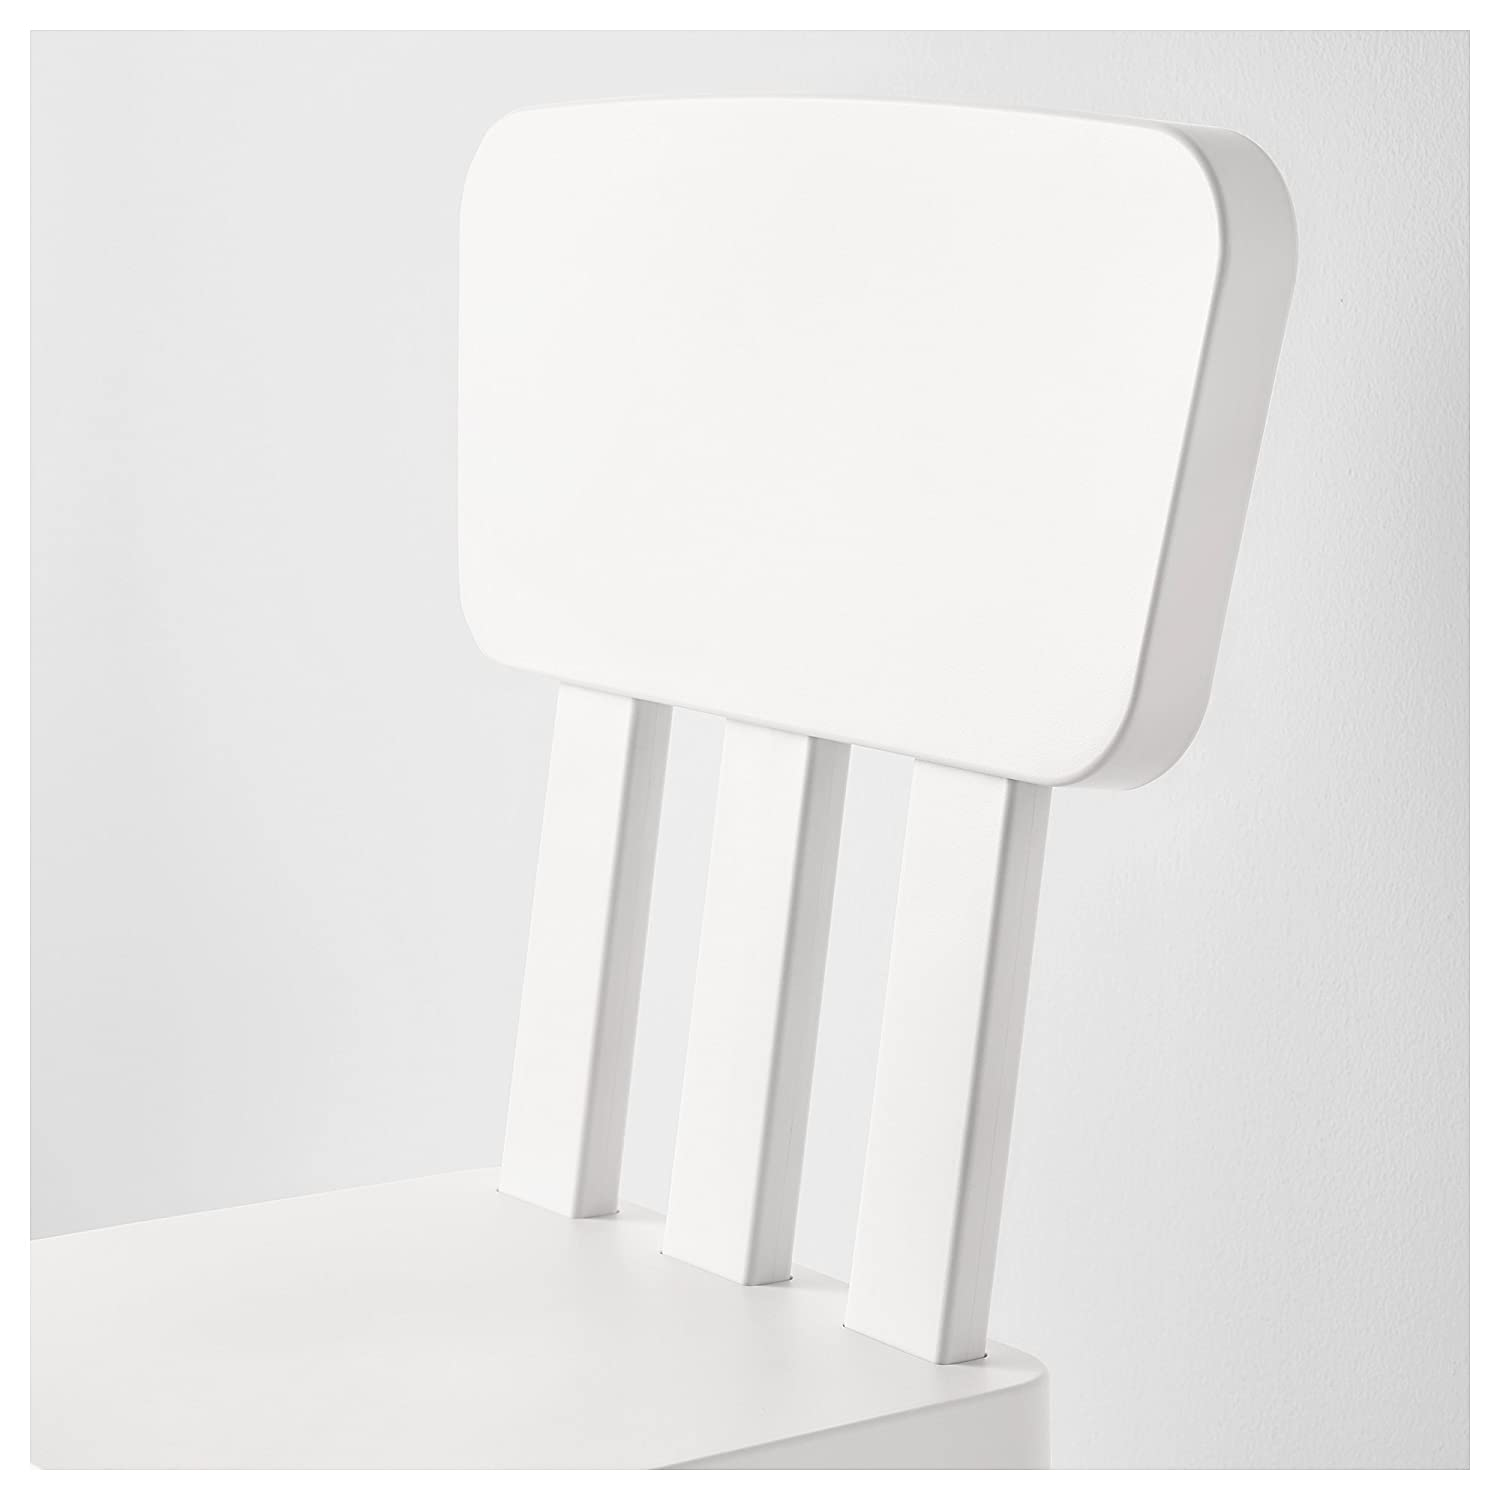 IKEA Mammut 403.653.71 High Back Plastic Childrens Chair Suitable for Indoor//Outdoor Use White /…